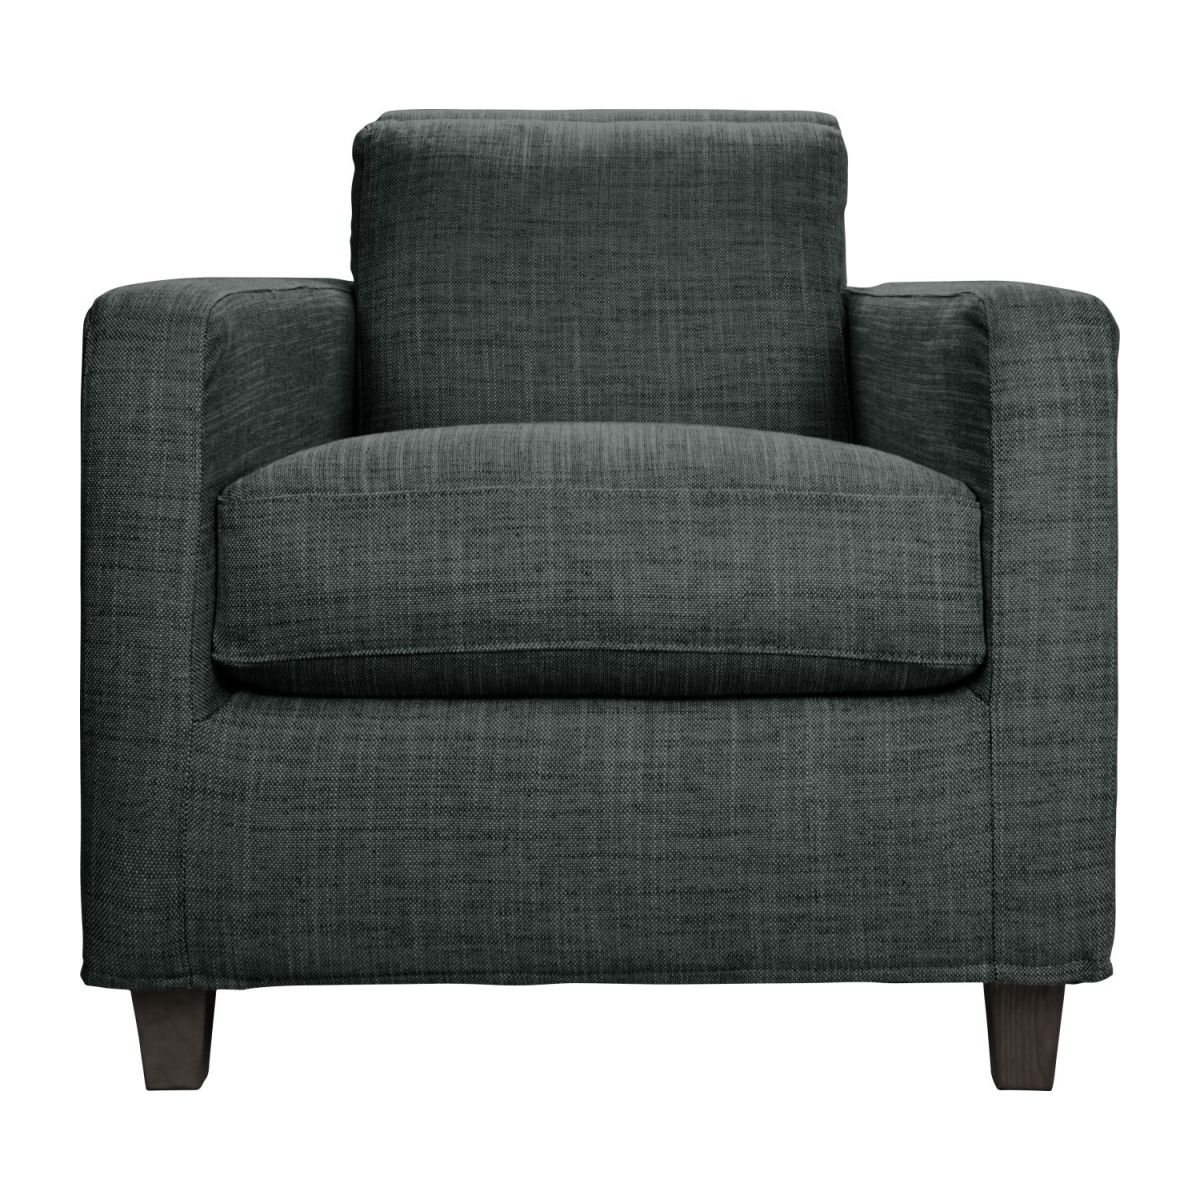 Chester - Fabric armchair - Habitat